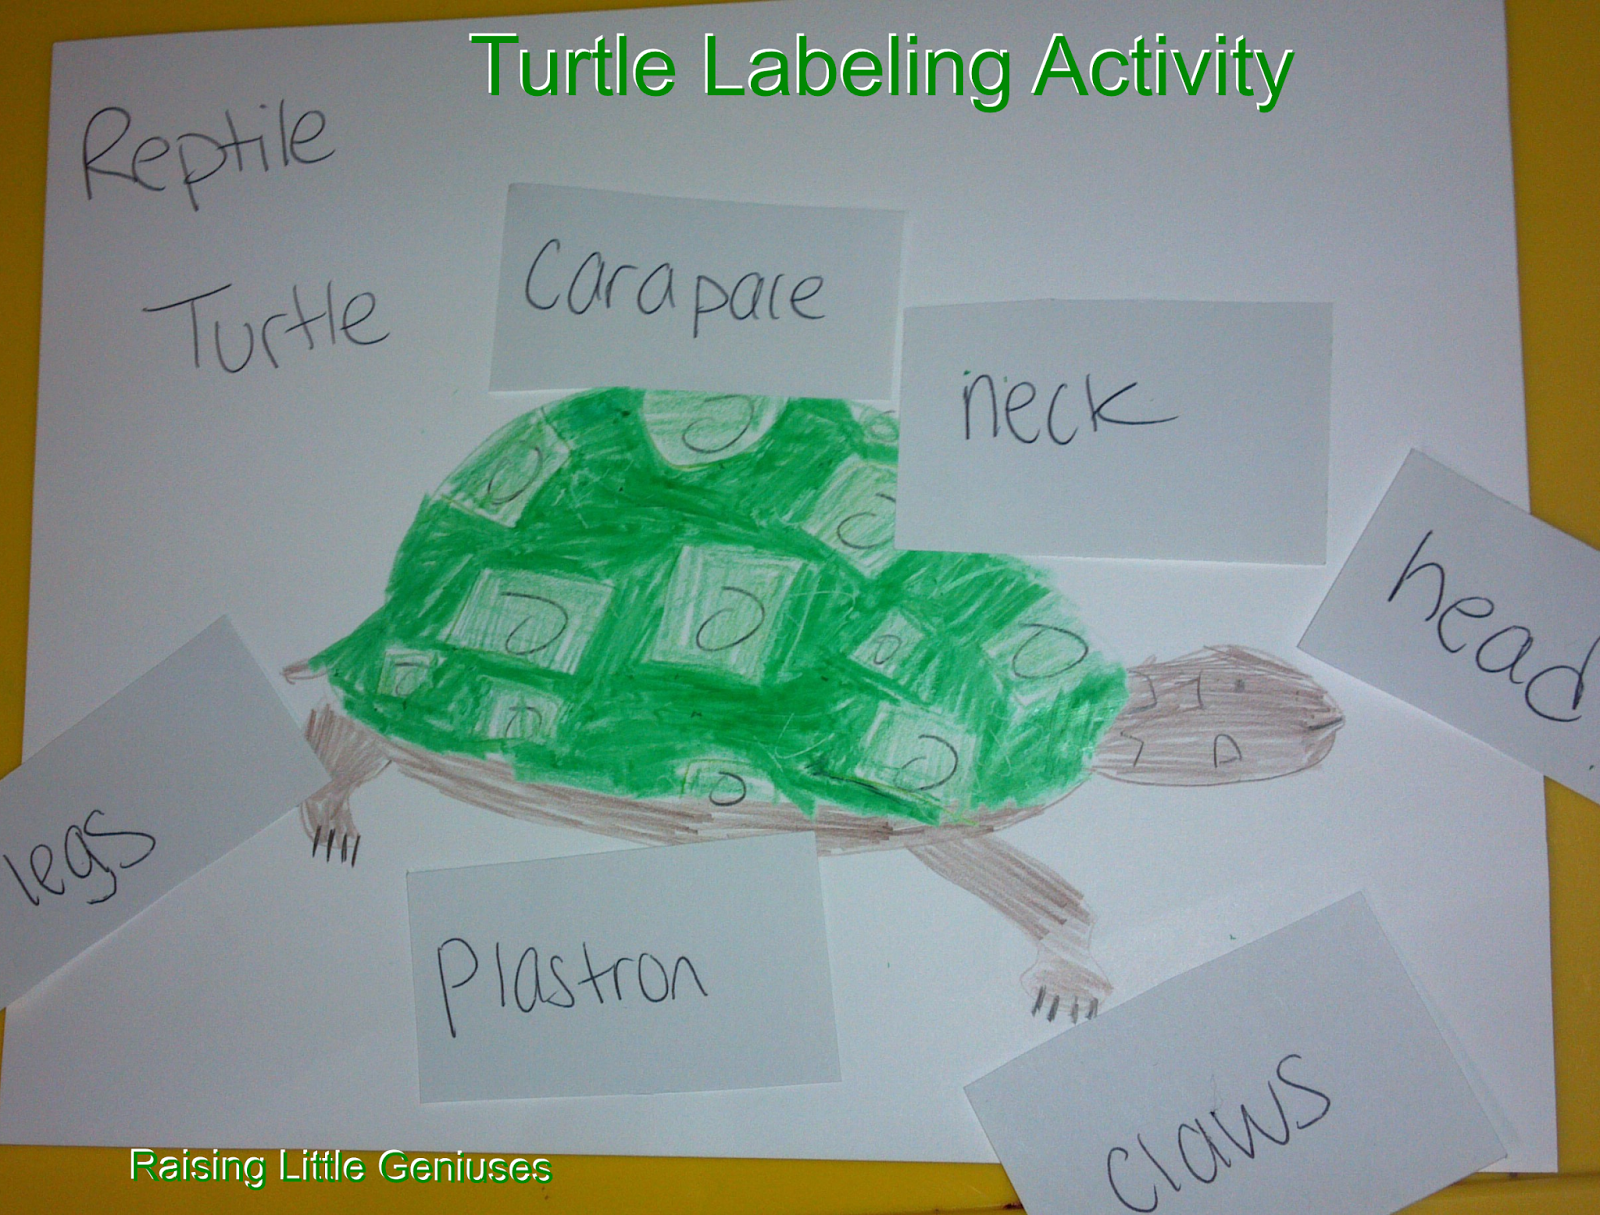 Turtle Labeling Activity Teach Your Little One The Parts Of A Turtle With This Montessori